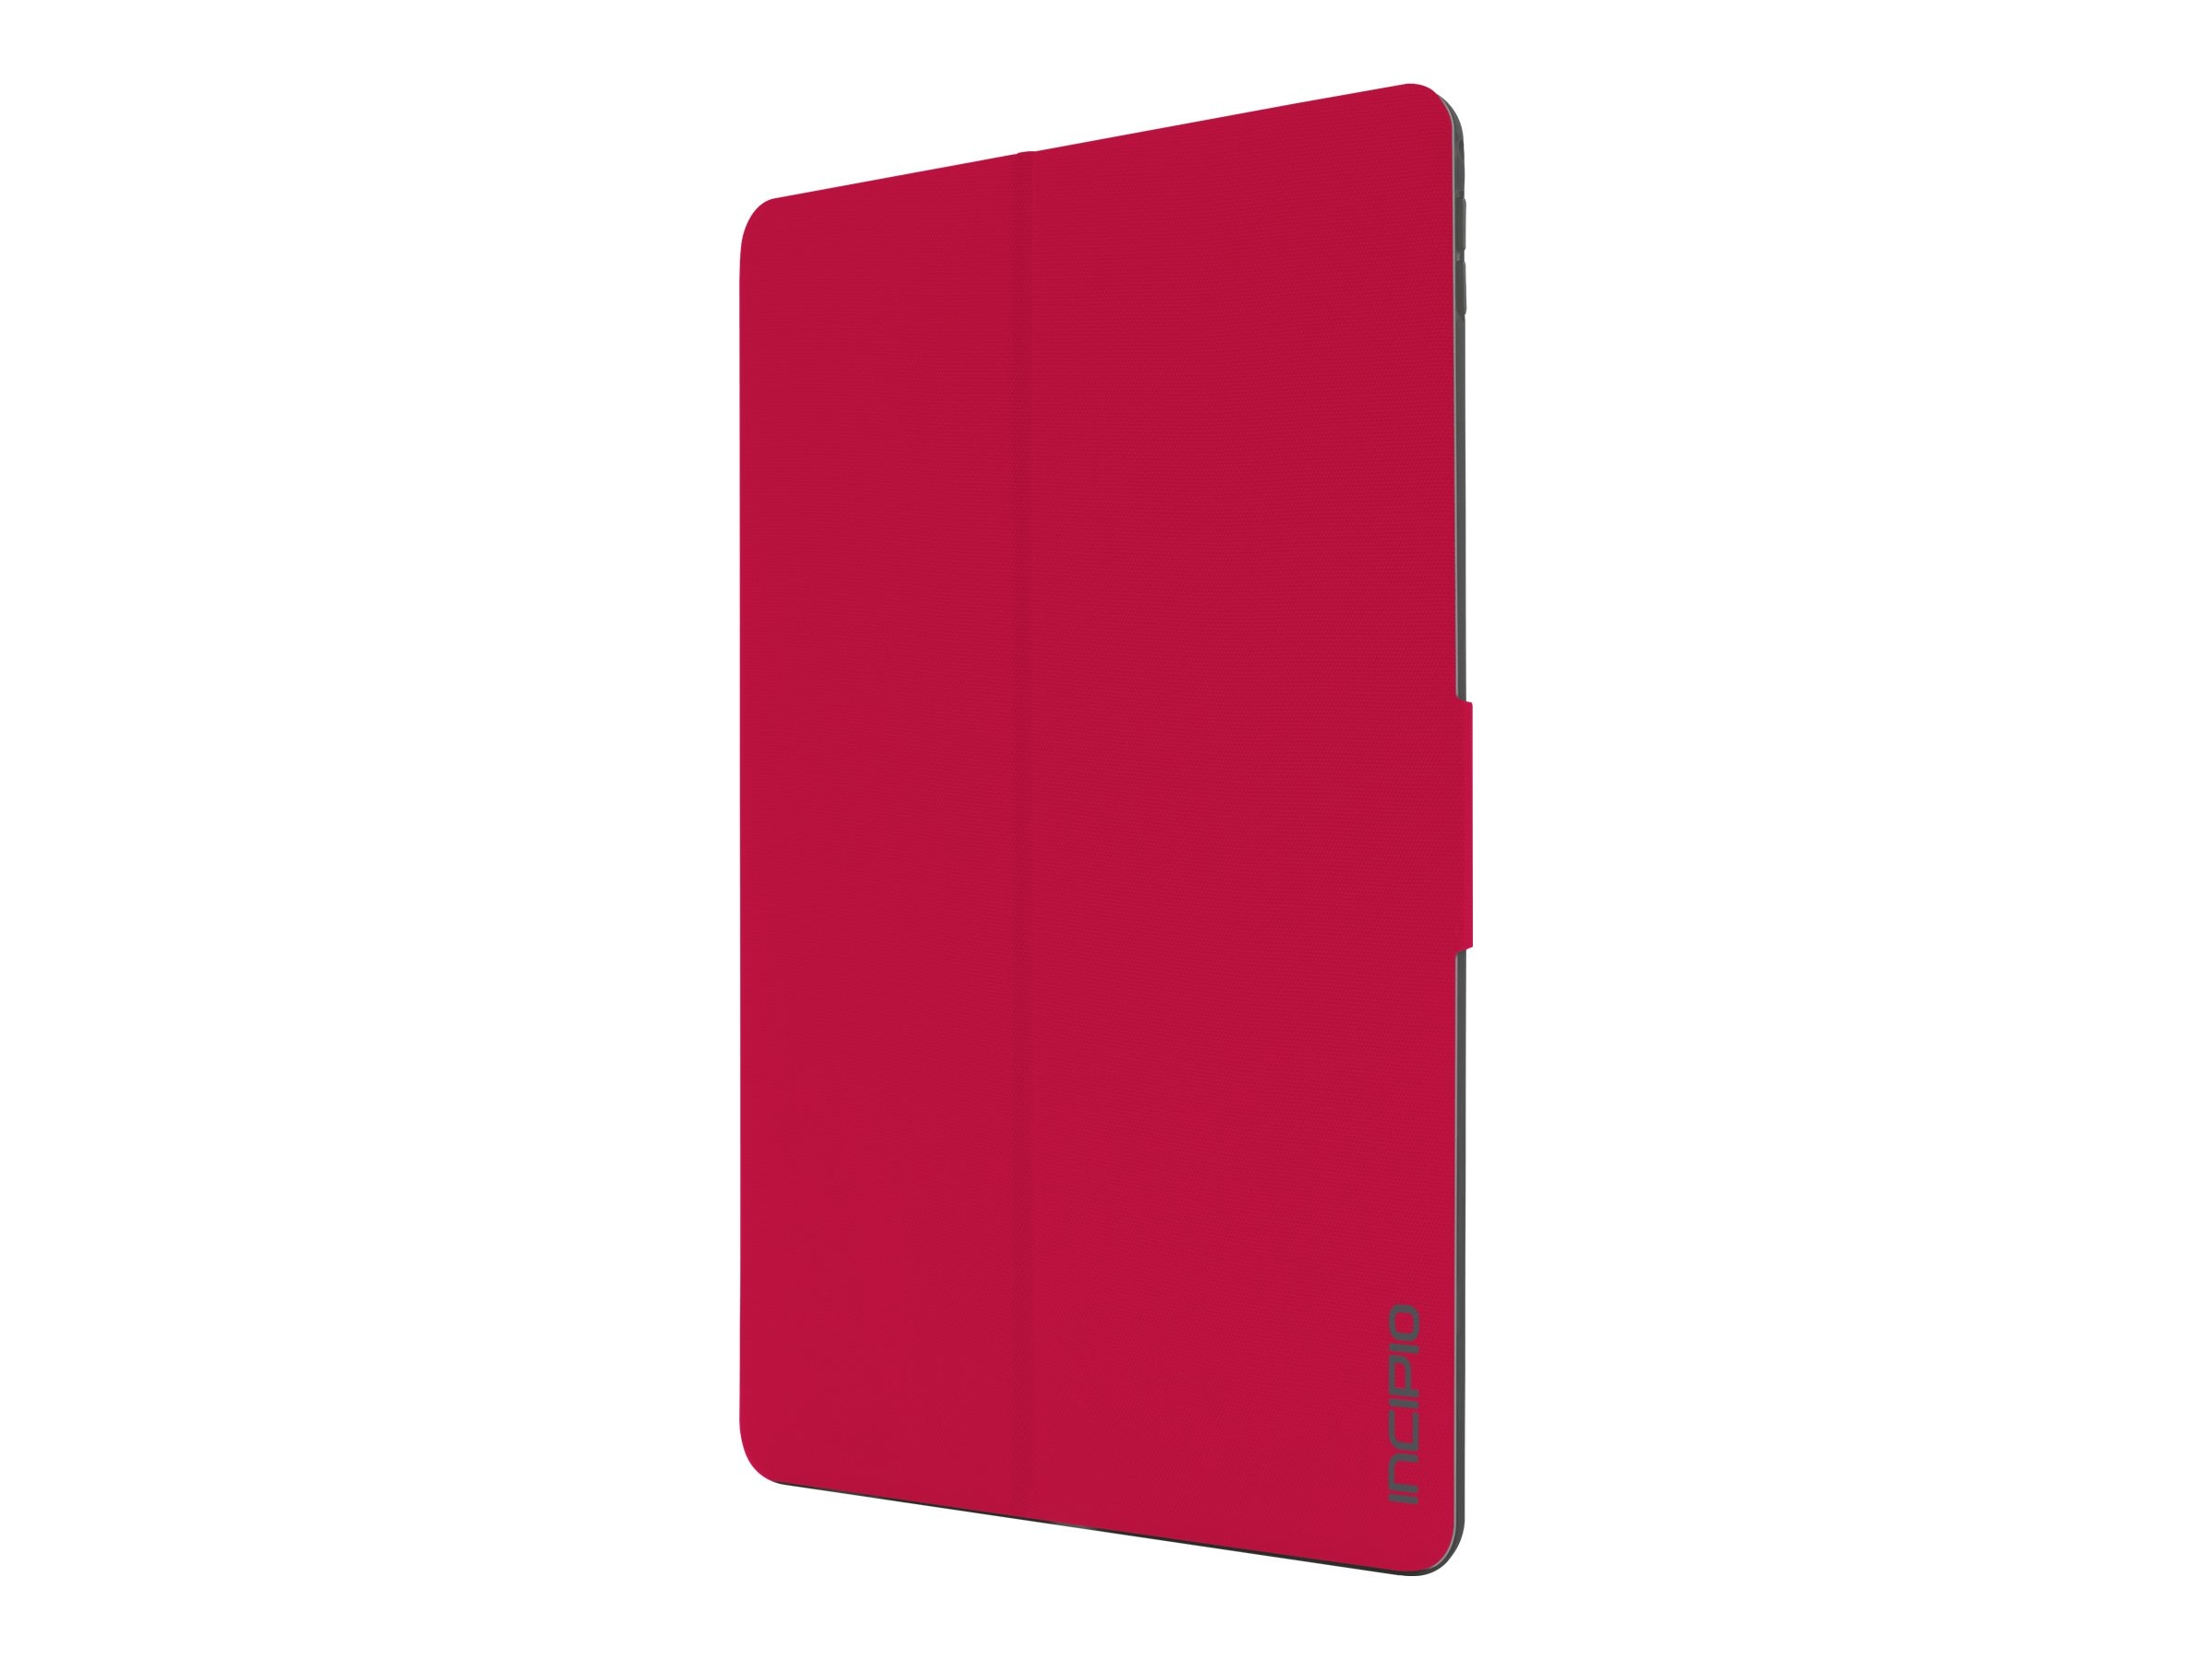 Incipio Technology IPD-286-RED Image 1